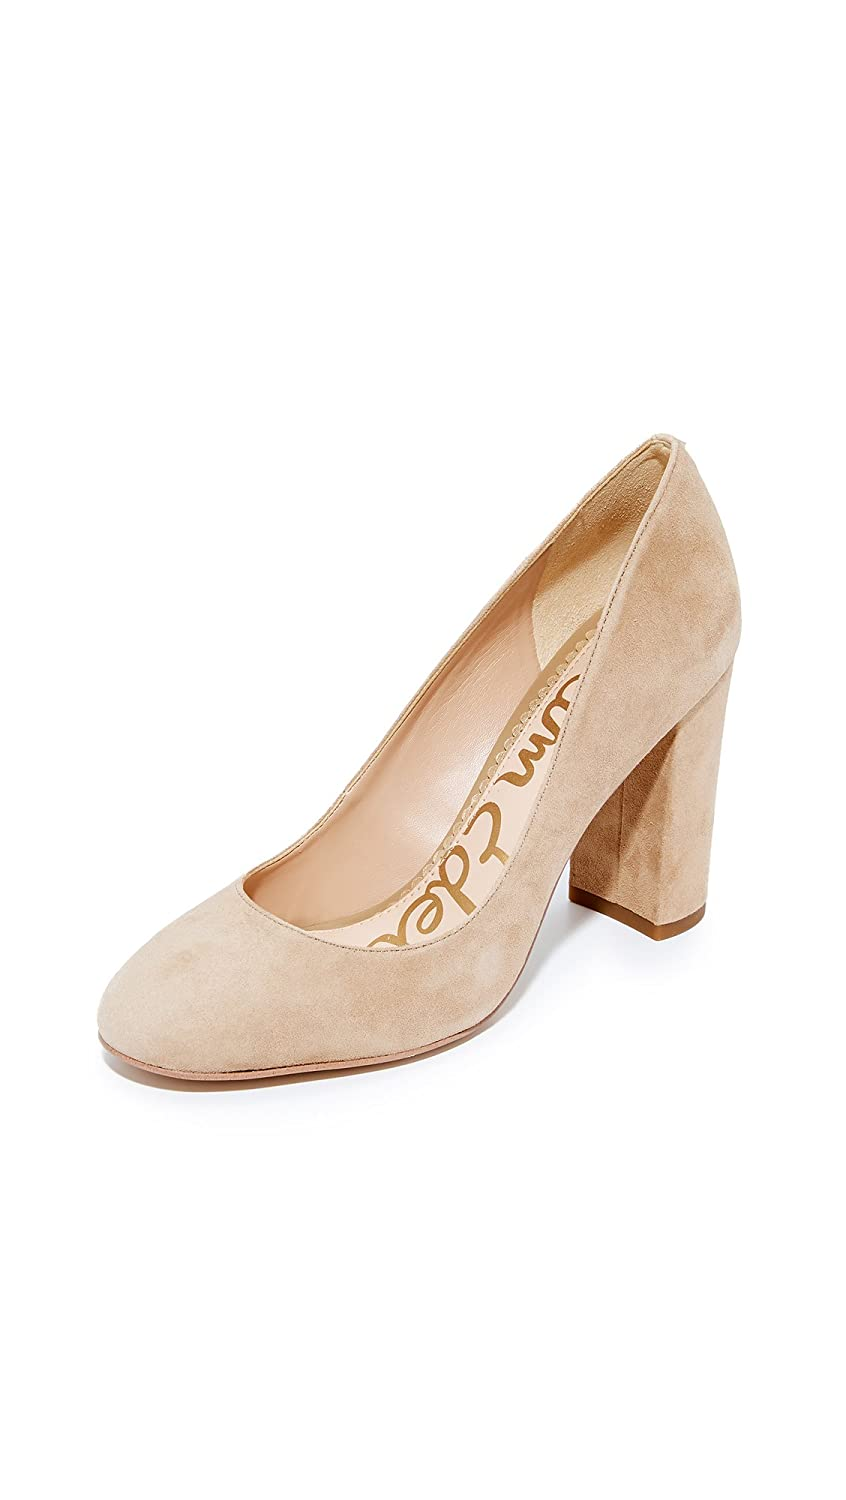 Oatmeal Sam Edelman Women's Stillson Pumps